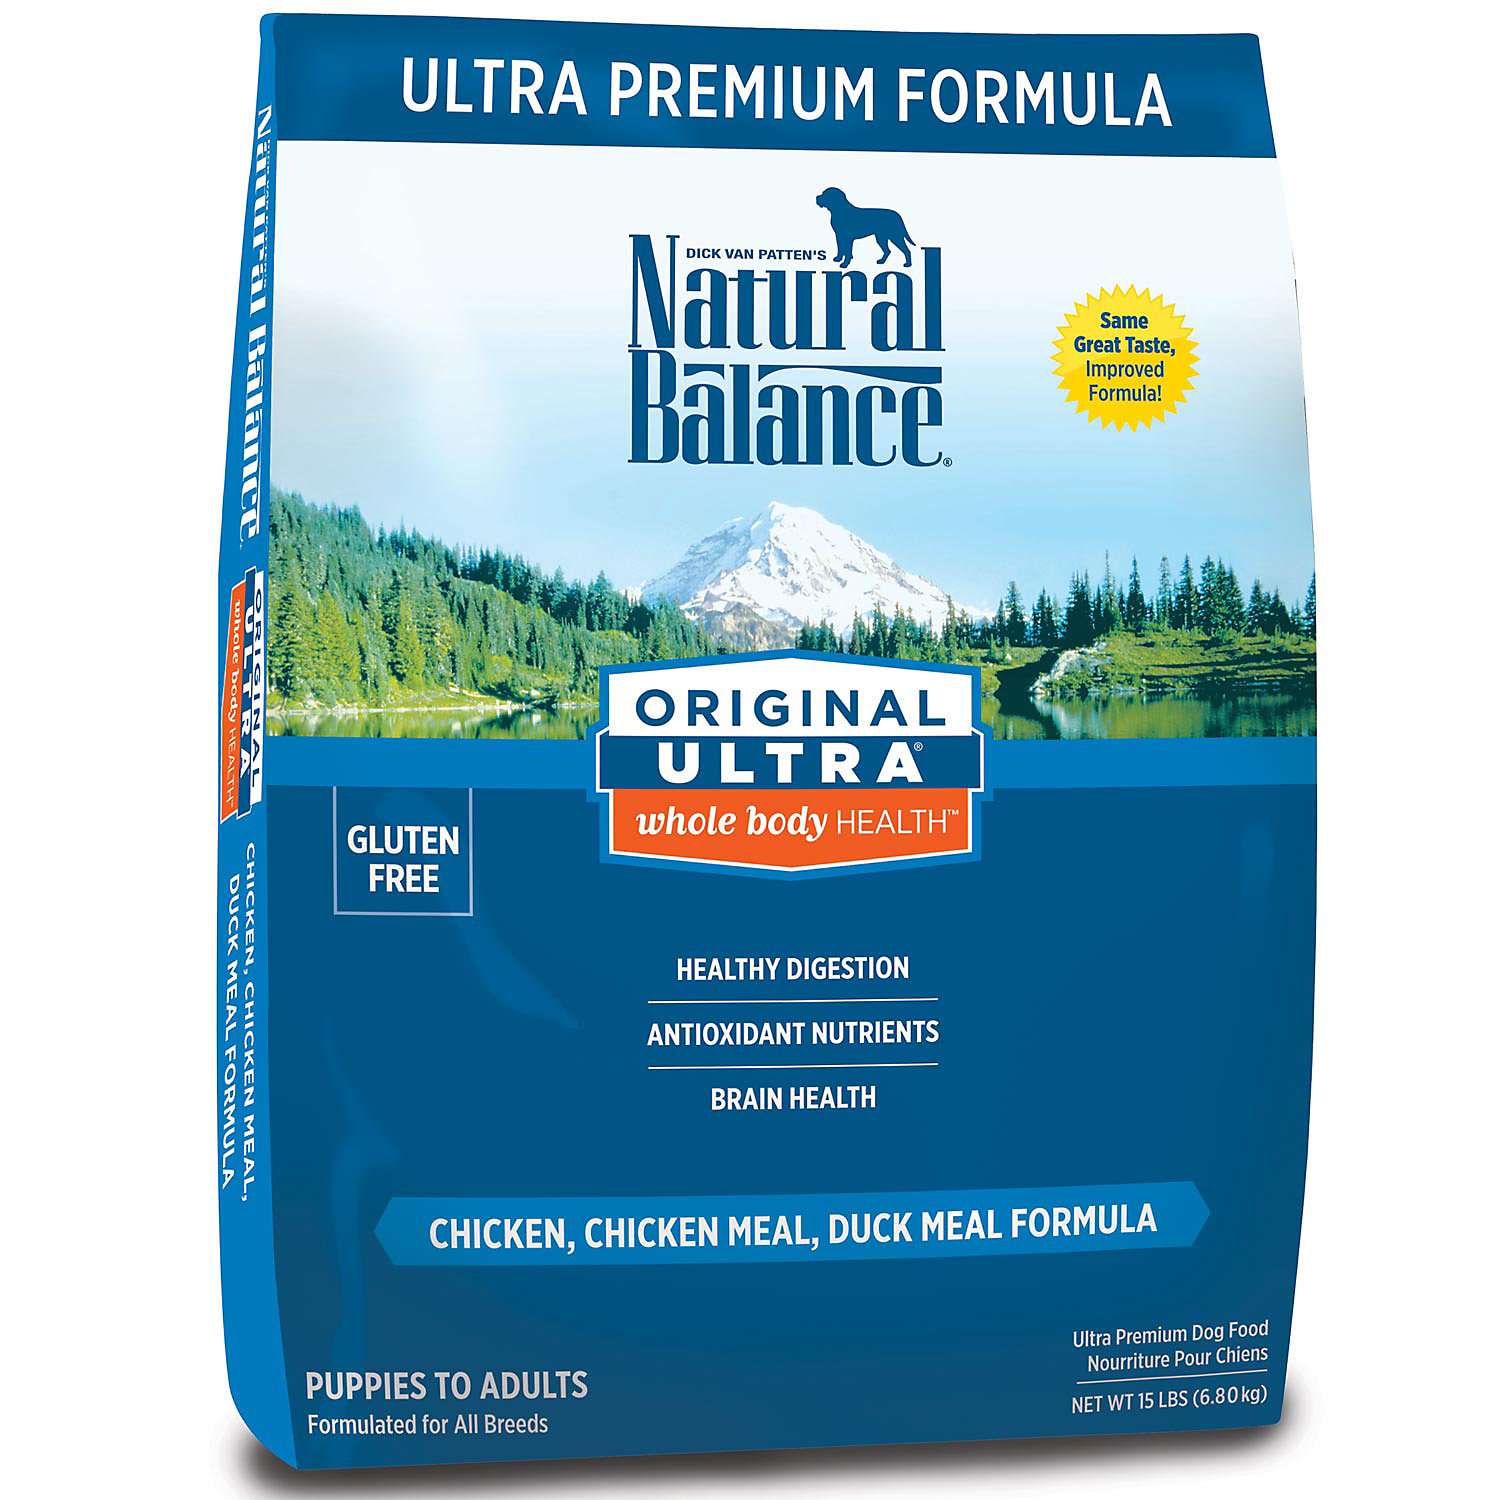 Natural Balance Original Ultra Whole Body Heallth Dog Food 15 Lbs.